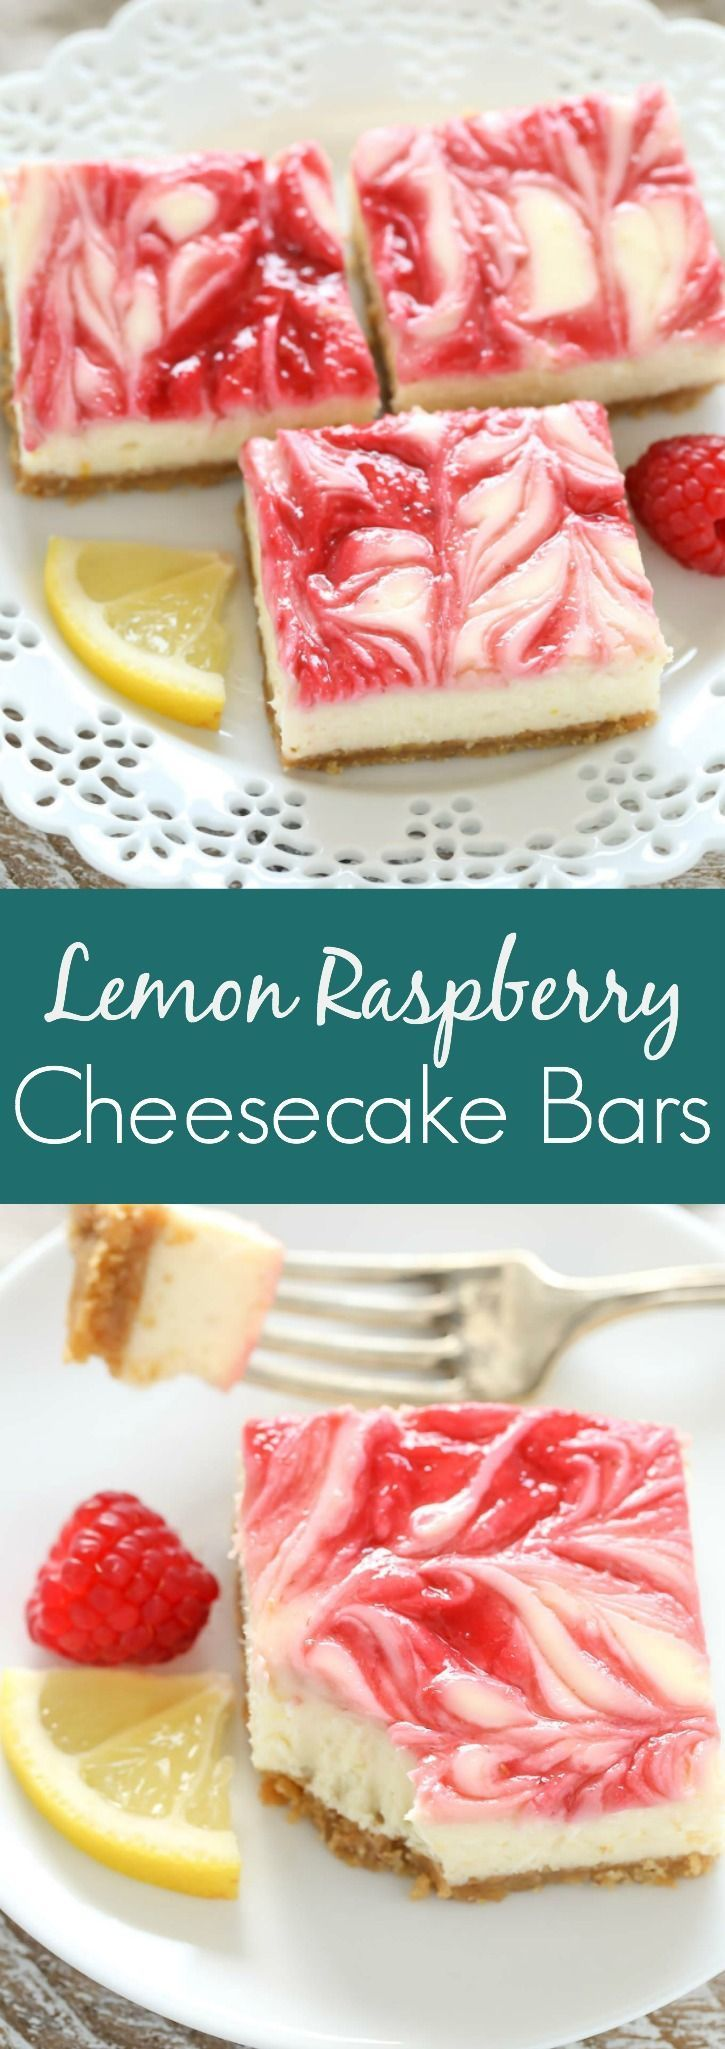 These Lemon Raspberry Cheesecake Bars feature a creamy lemon cheesecake filling with a raspberry swirl topped on a homemade graham cracker crust.